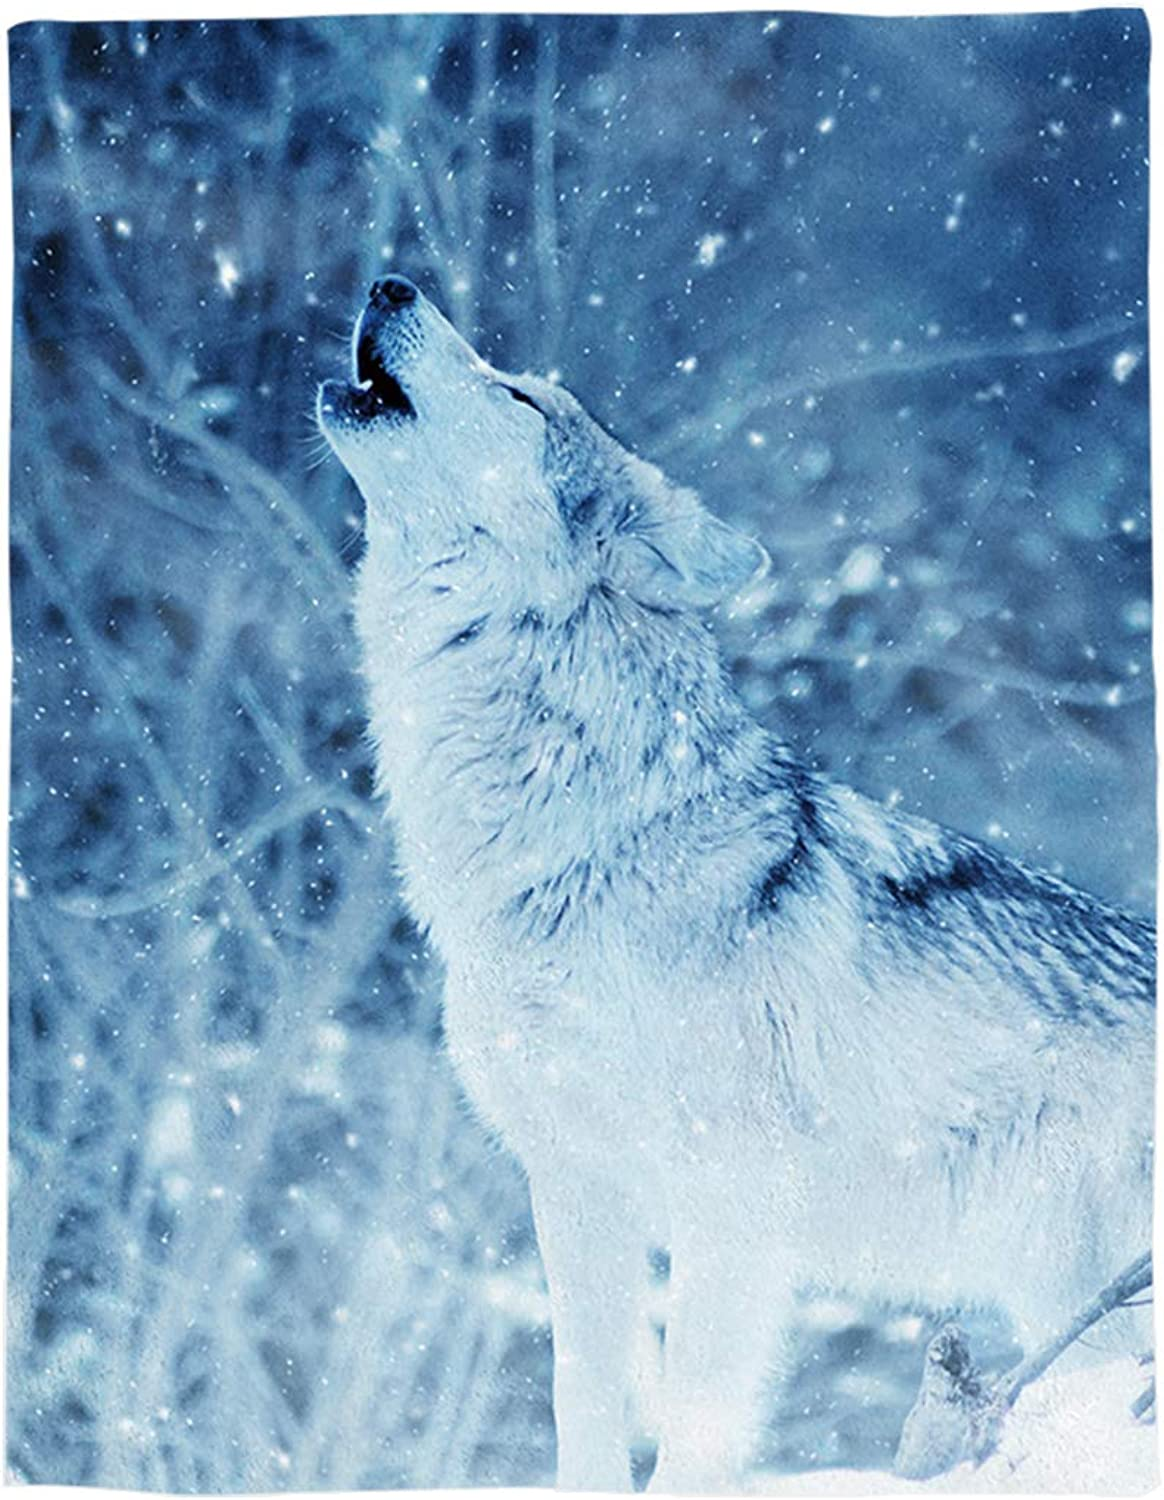 YEHO Art Gallery Flannel Fleece Bed Blanket Soft ThrowBlankets for Adult Kids Girls Boys,White Wolf in The Snow Animal Pattern,Lightweight Blankets for Bedroom Living Room Sofa Couch,49x59inch